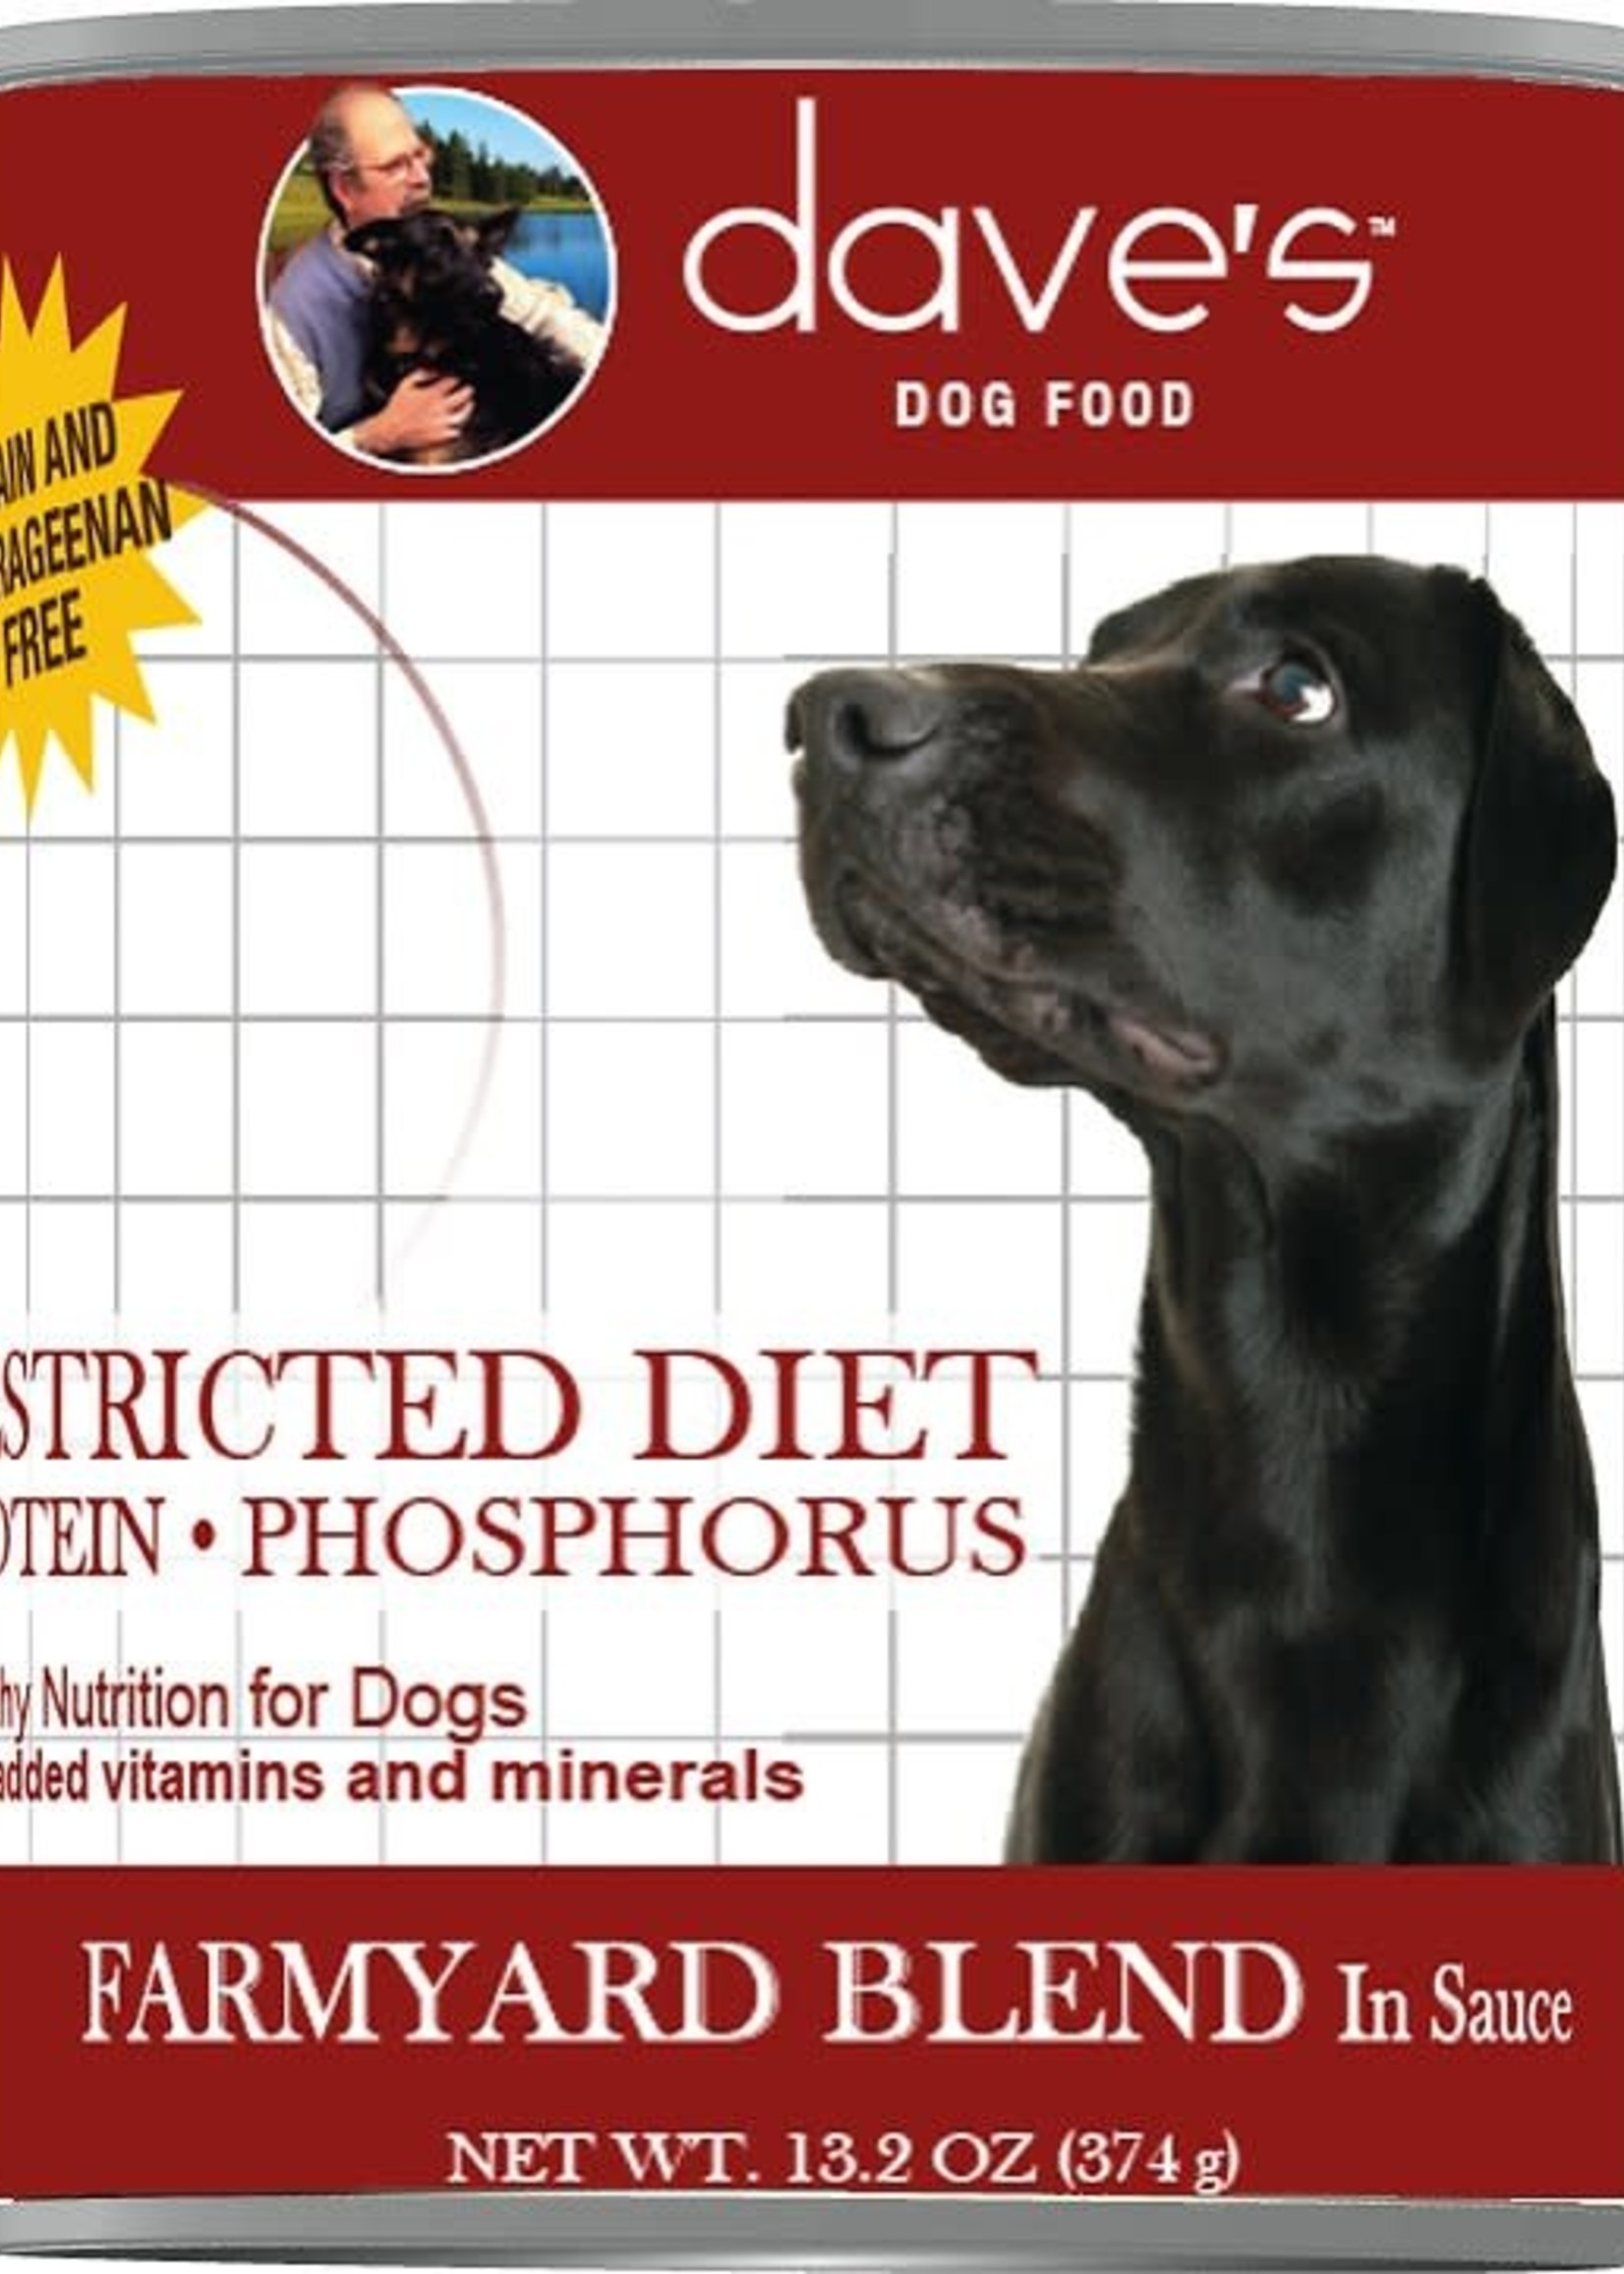 Dave's Pet Food Dave's Dog Can Restricted Diet Protein Phosphorous Farmyard Blend 13 oz